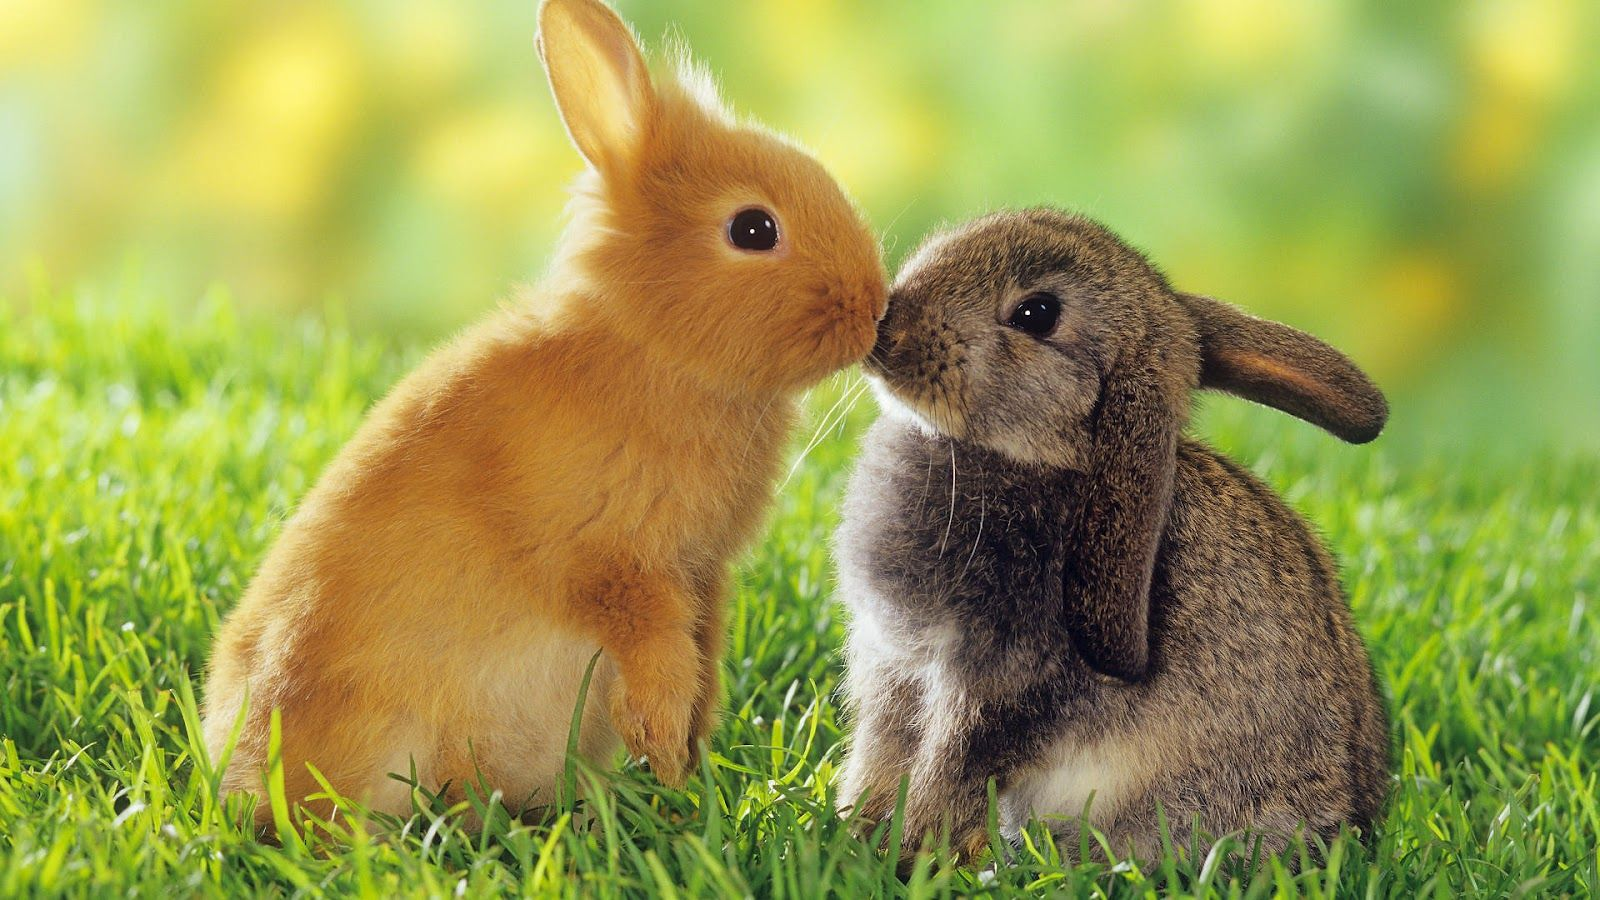 1600x900 Rabbits HD Wallpapers | Rabbits HD Wallpapers | Pinterest | Hd ...